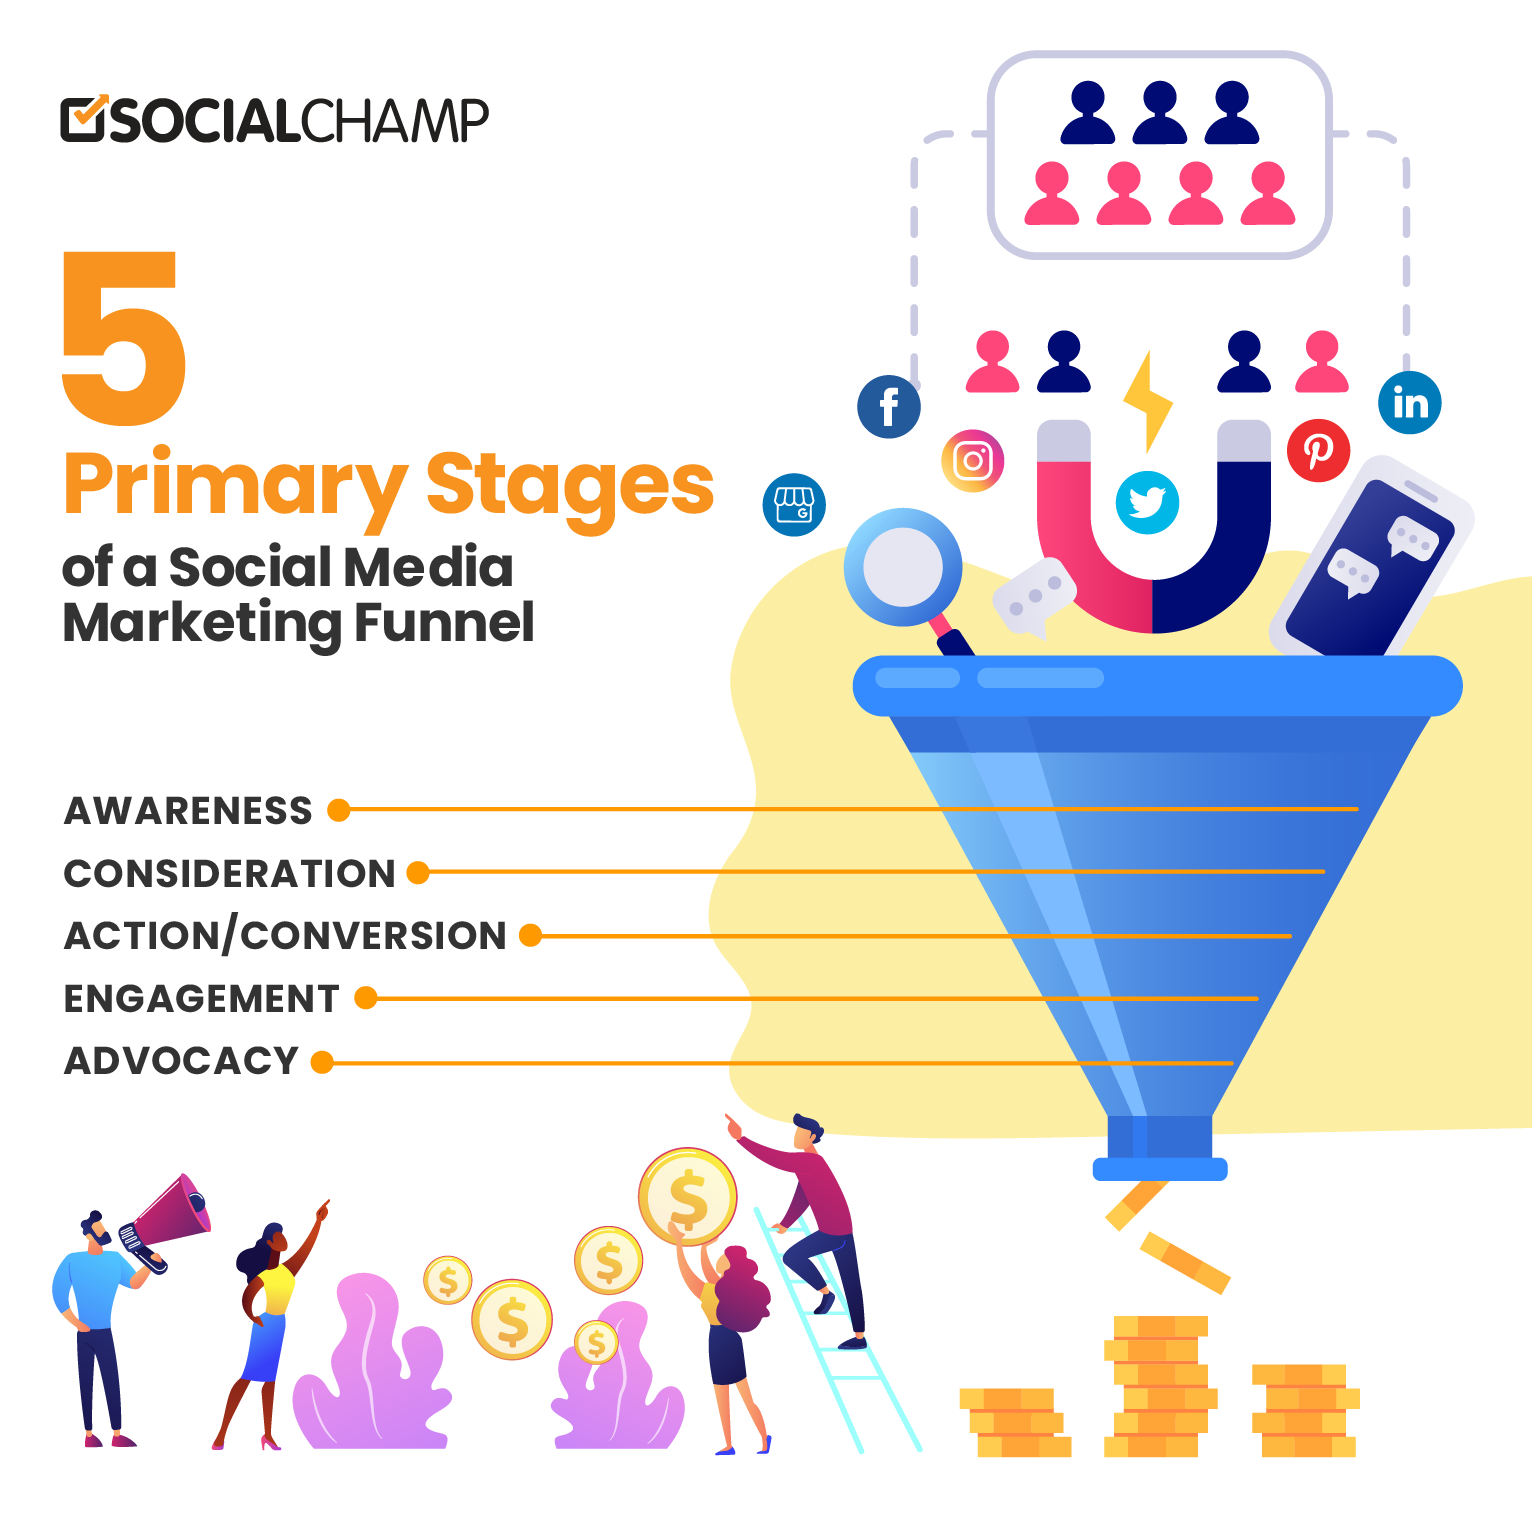 stages-of-social-media-marketing-funnel